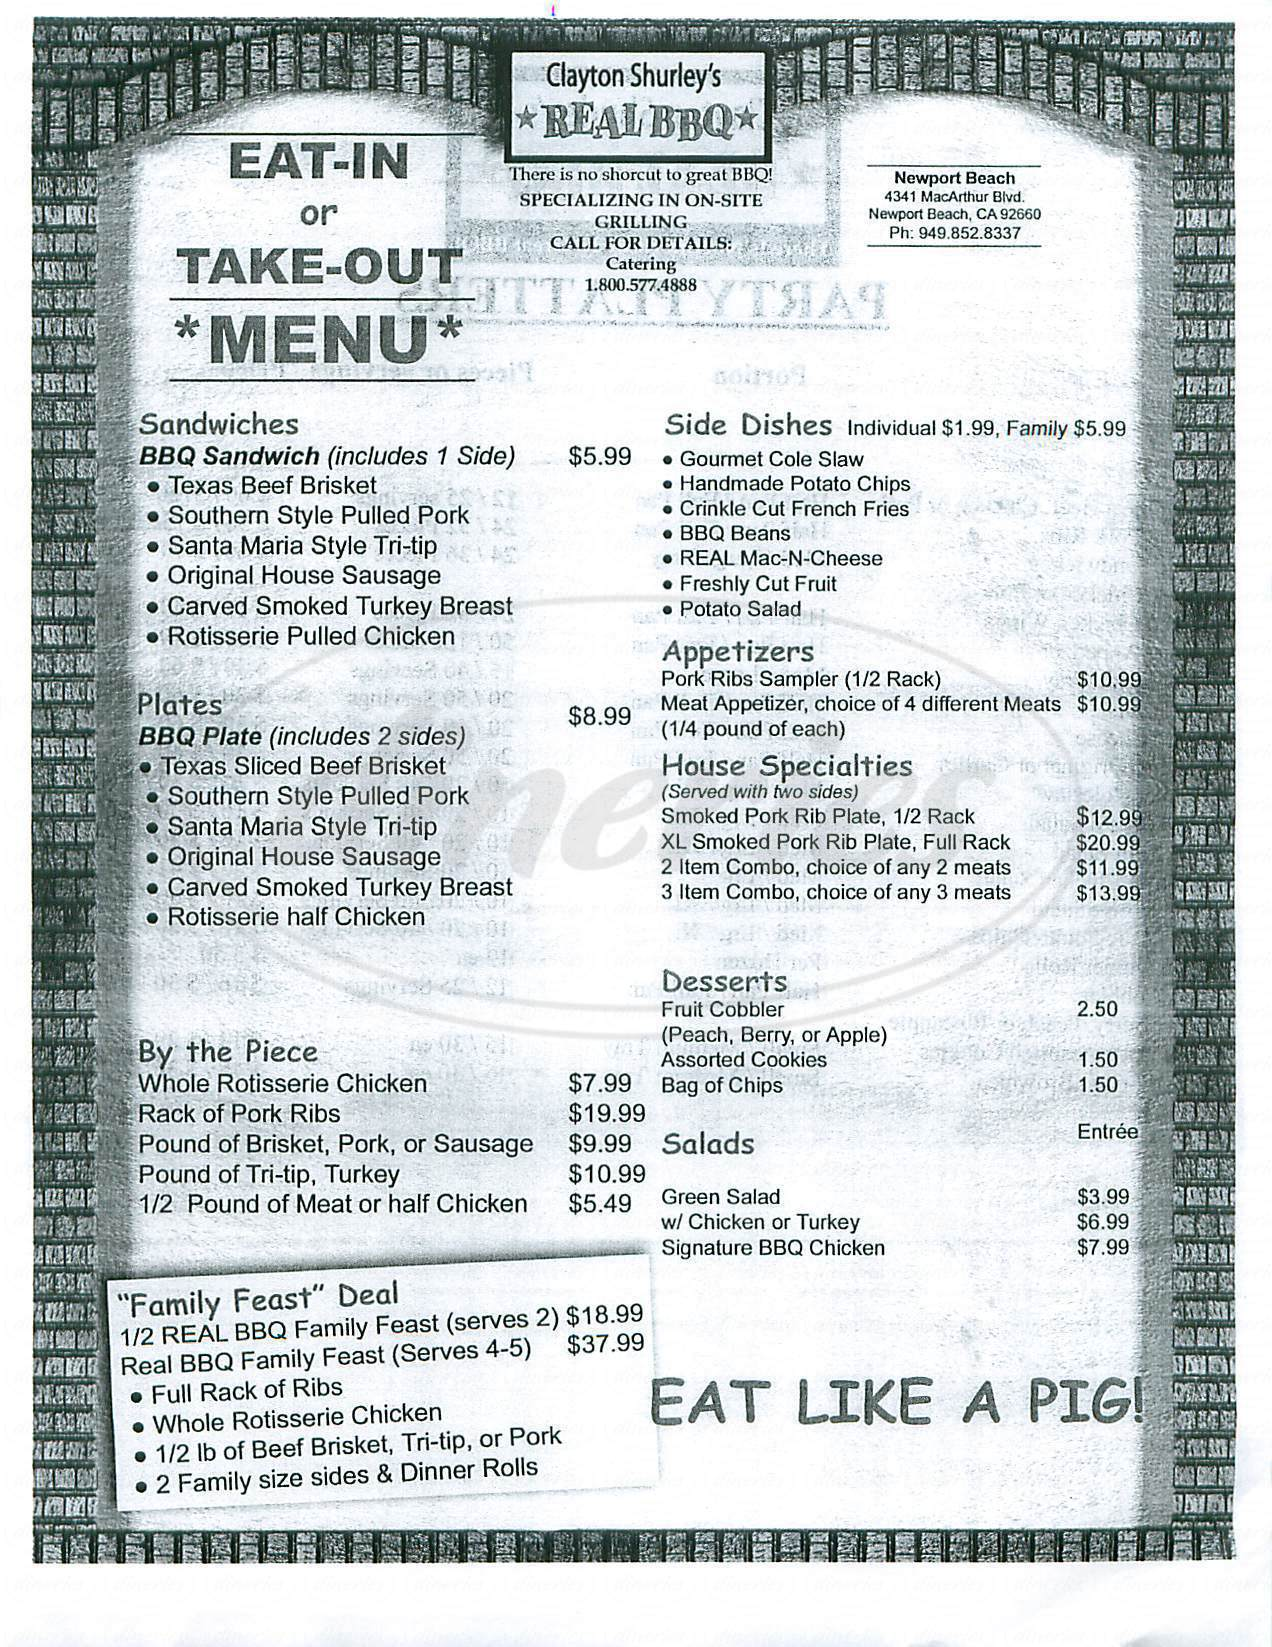 menu for Clayton Shurley's Real BBQ